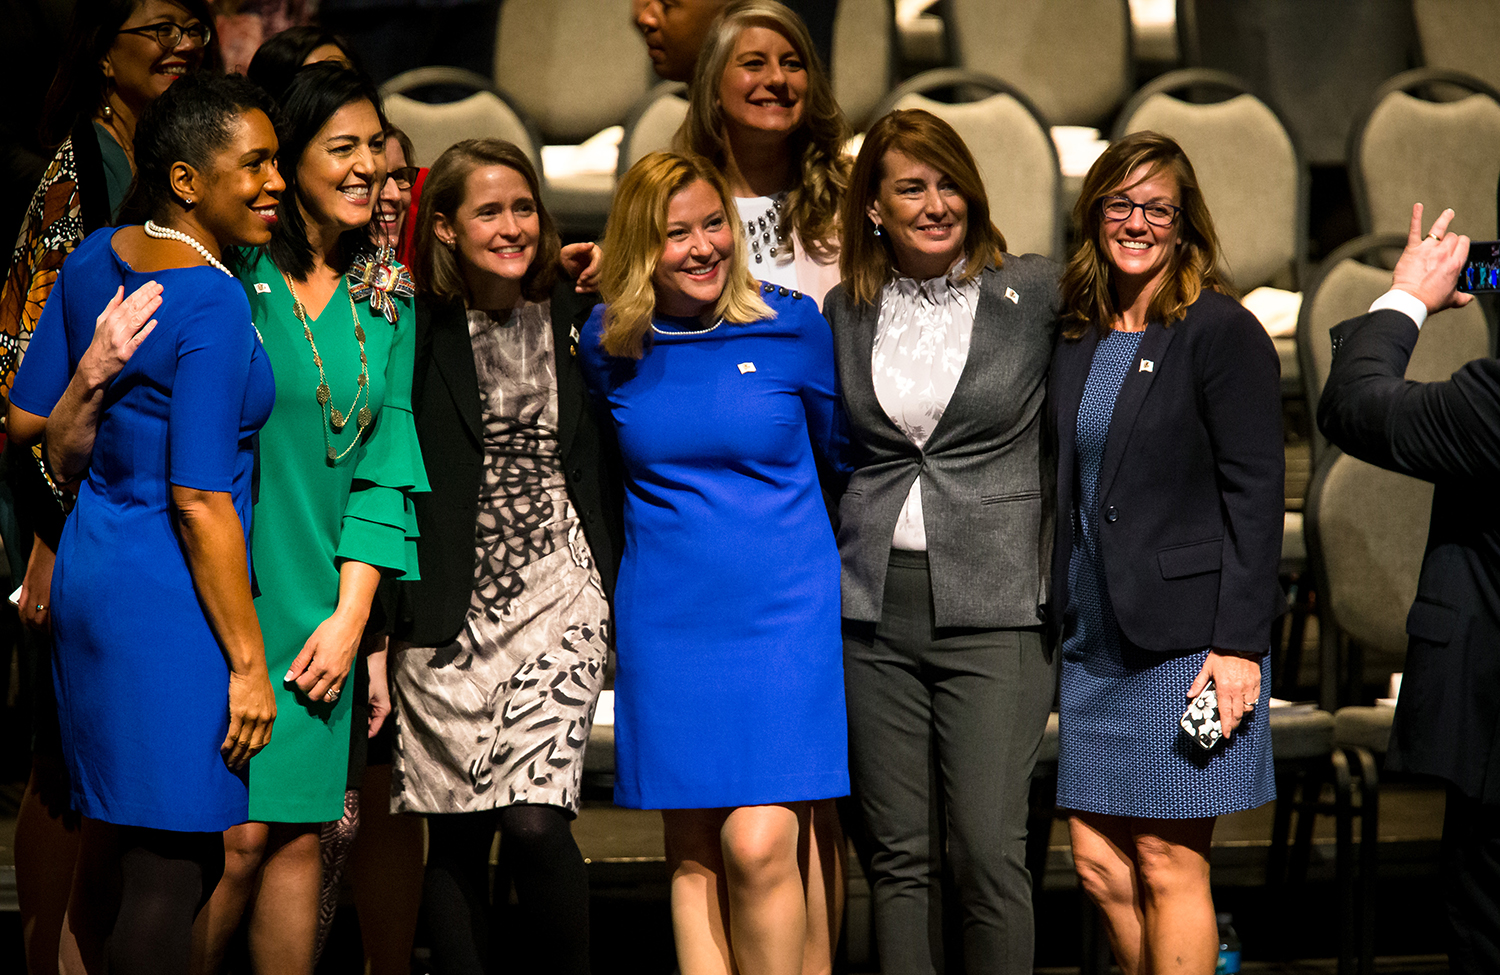 Lt. Gov.-elect Juliana Stratton, left, Illinois State Rep. Linda Chapa LaVia, D-Aurora, Michelle Mussman, D-Schaumburg, Rep. Michelle Mussman, D-Schaumburg, Rep. Anna Moeller. D-Elgin, Rep. Stephanie Kifowit, D-Oswego, Rep. Deborah Conroy, D-Villa Park, and Rep. Katie Stuart, D-Edwardsville, pose for a photograph on stage prior to the inauguration ceremony for the Illinois House of Representatives for the 101st General Assembly at the University of Illinois Springfield's Sangamon Auditorium, Wednesday, Jan. 9, 2019, in Springfield, Ill. The State Reps are part of a record setting number of women in 101st General Assembly with 66 women in the legislature. [Justin L. Fowler/The State Journal-Register]